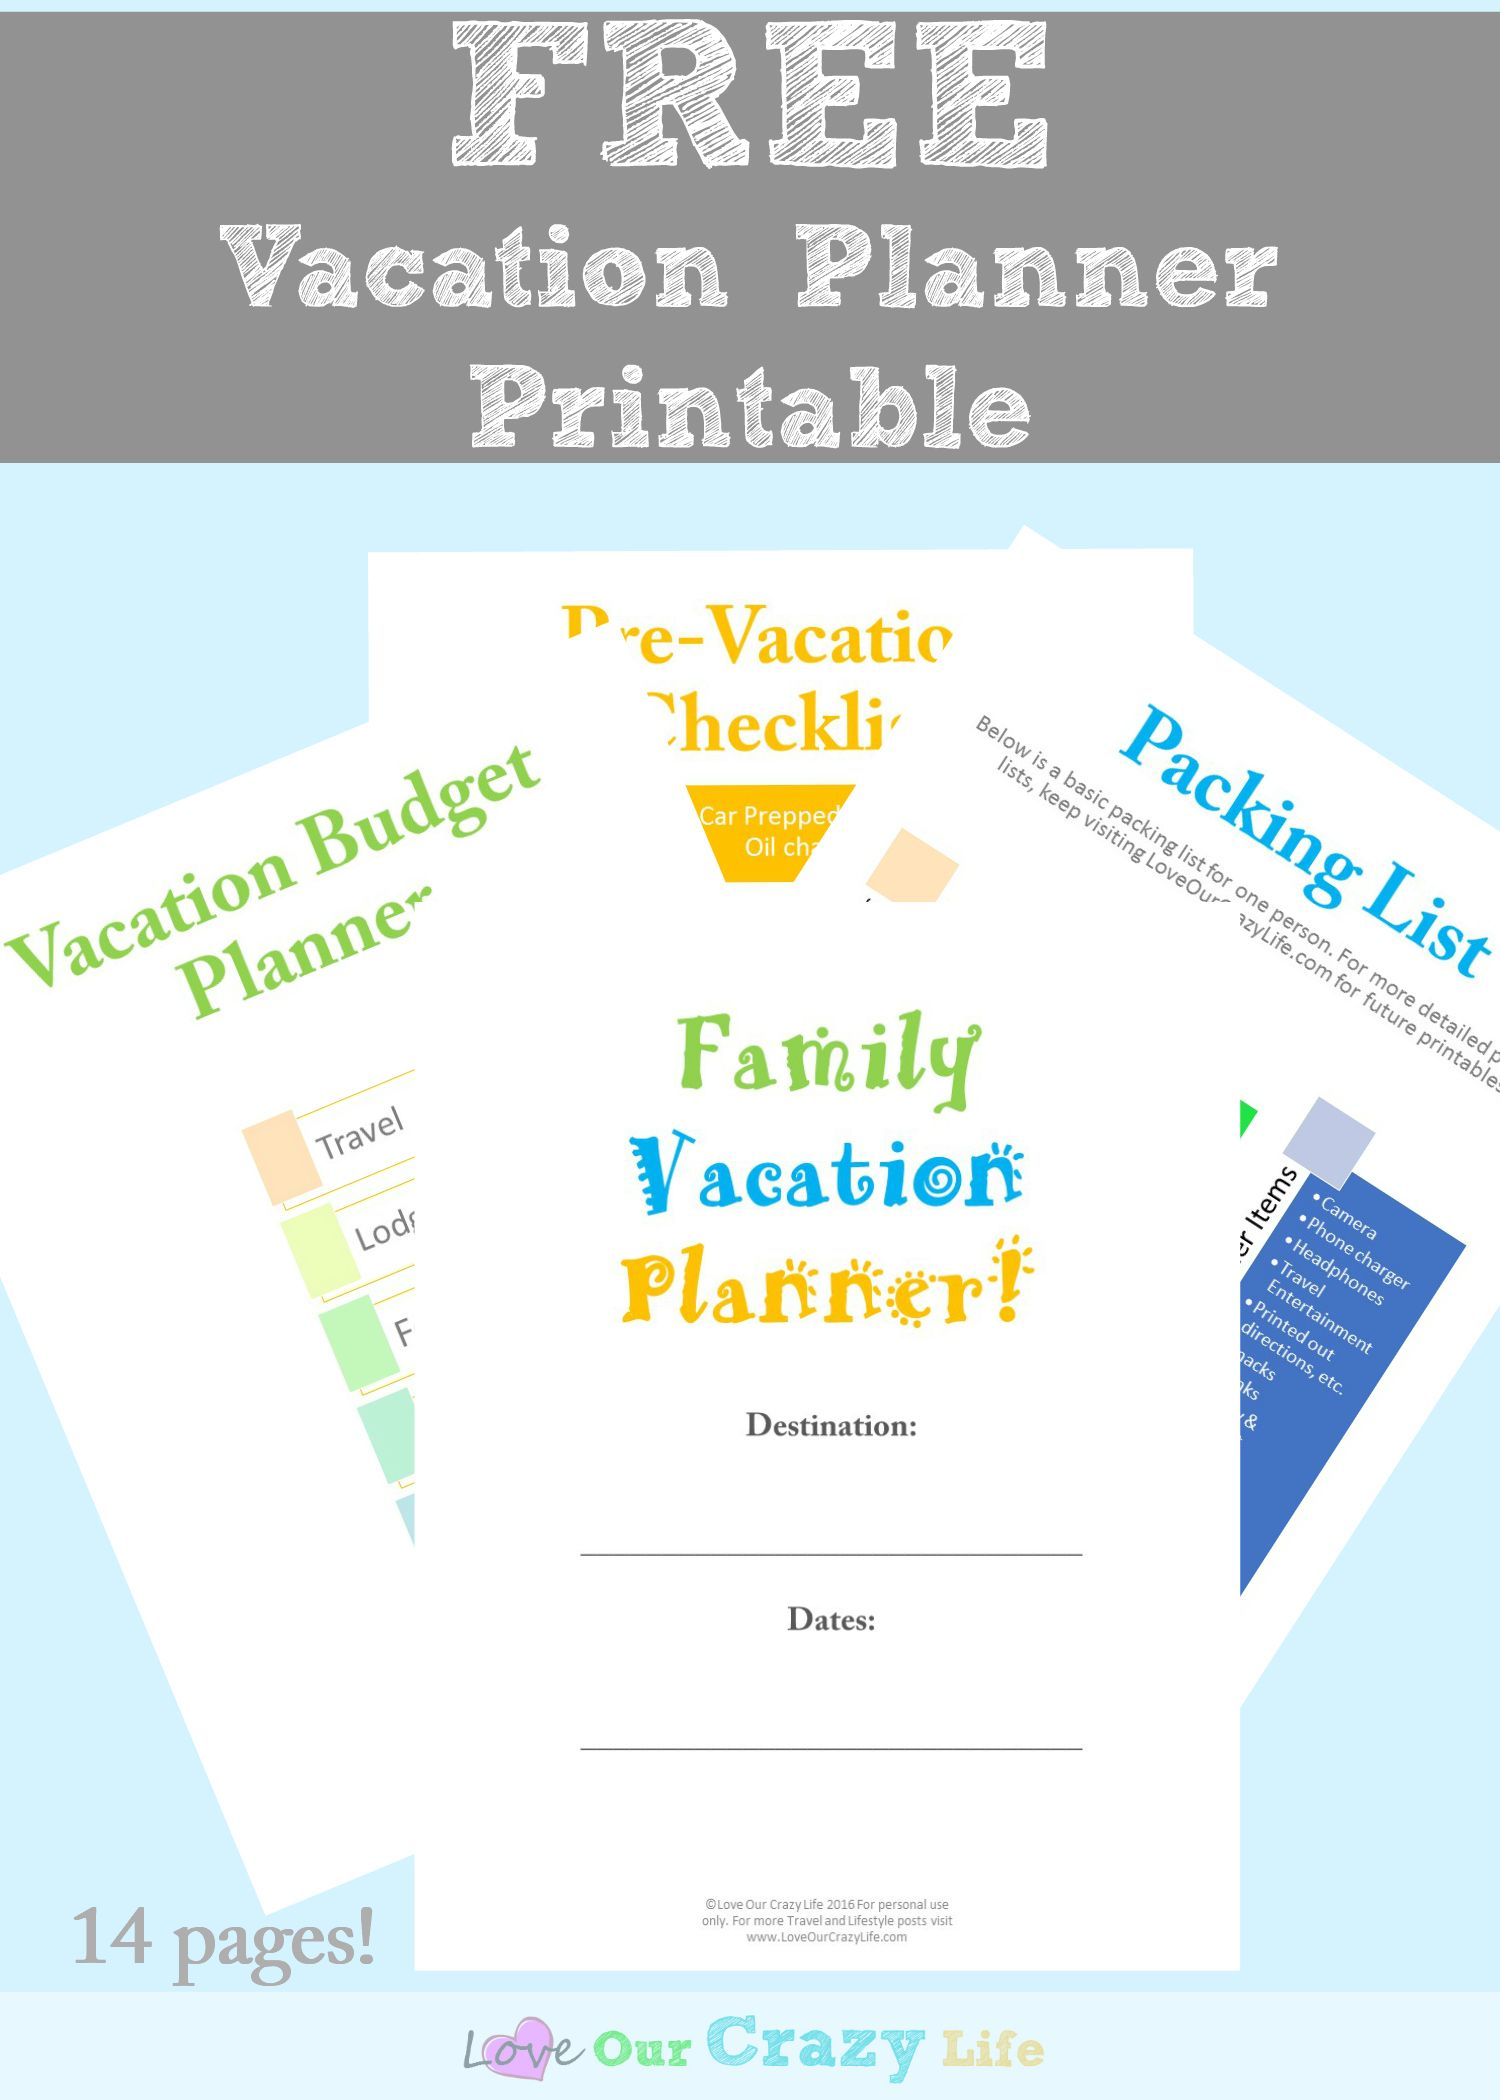 Family Vacation Planning Tips Free Planner